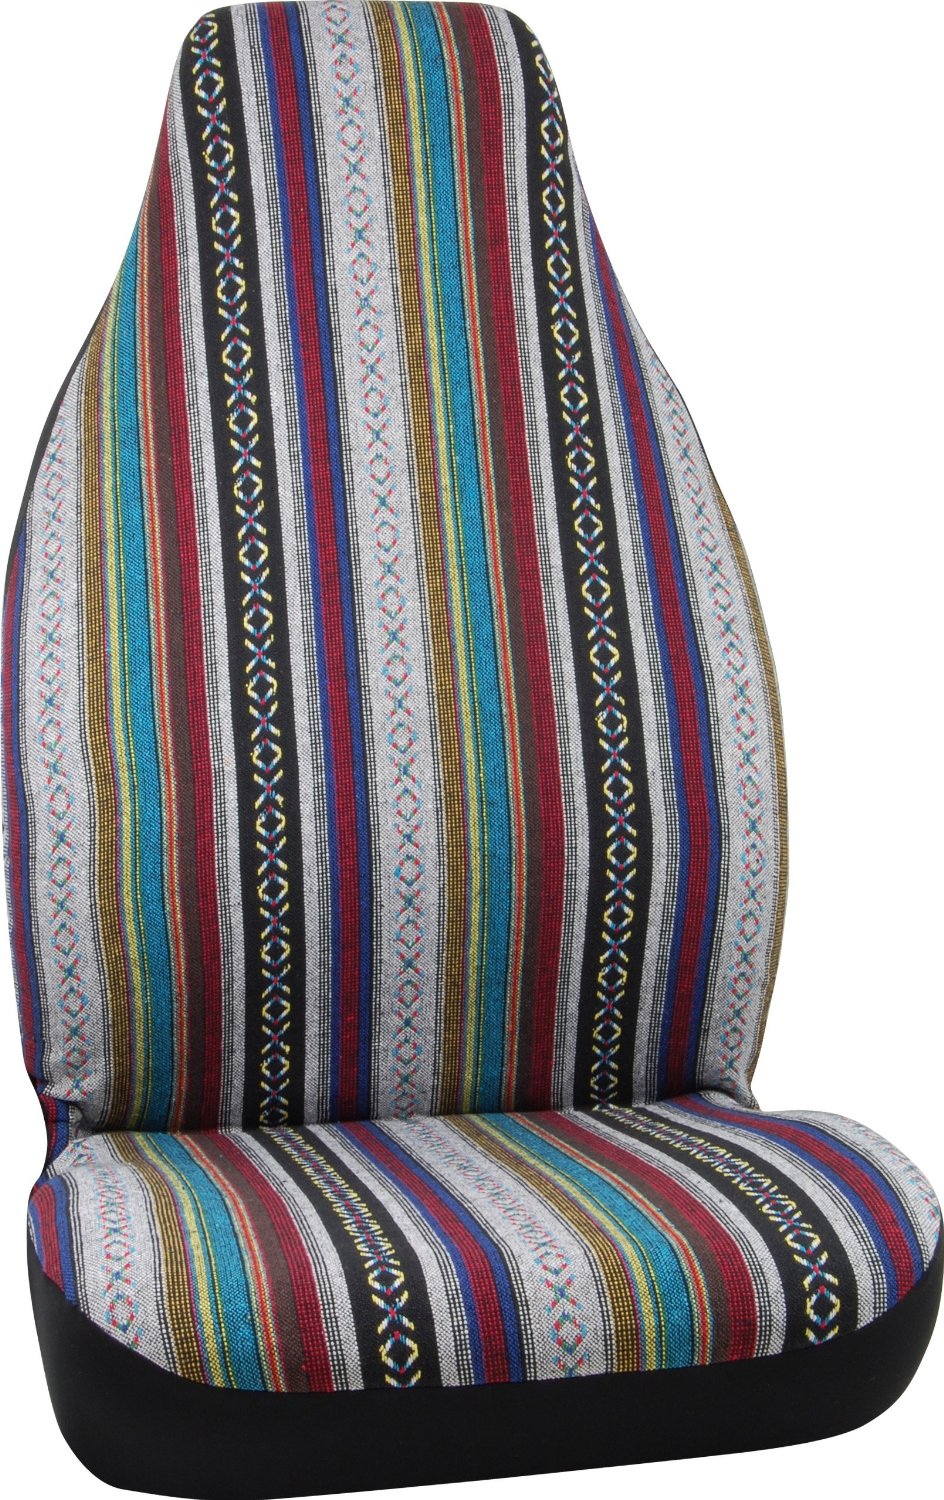 Bell Automotive  Baja Blanket Seat Cover